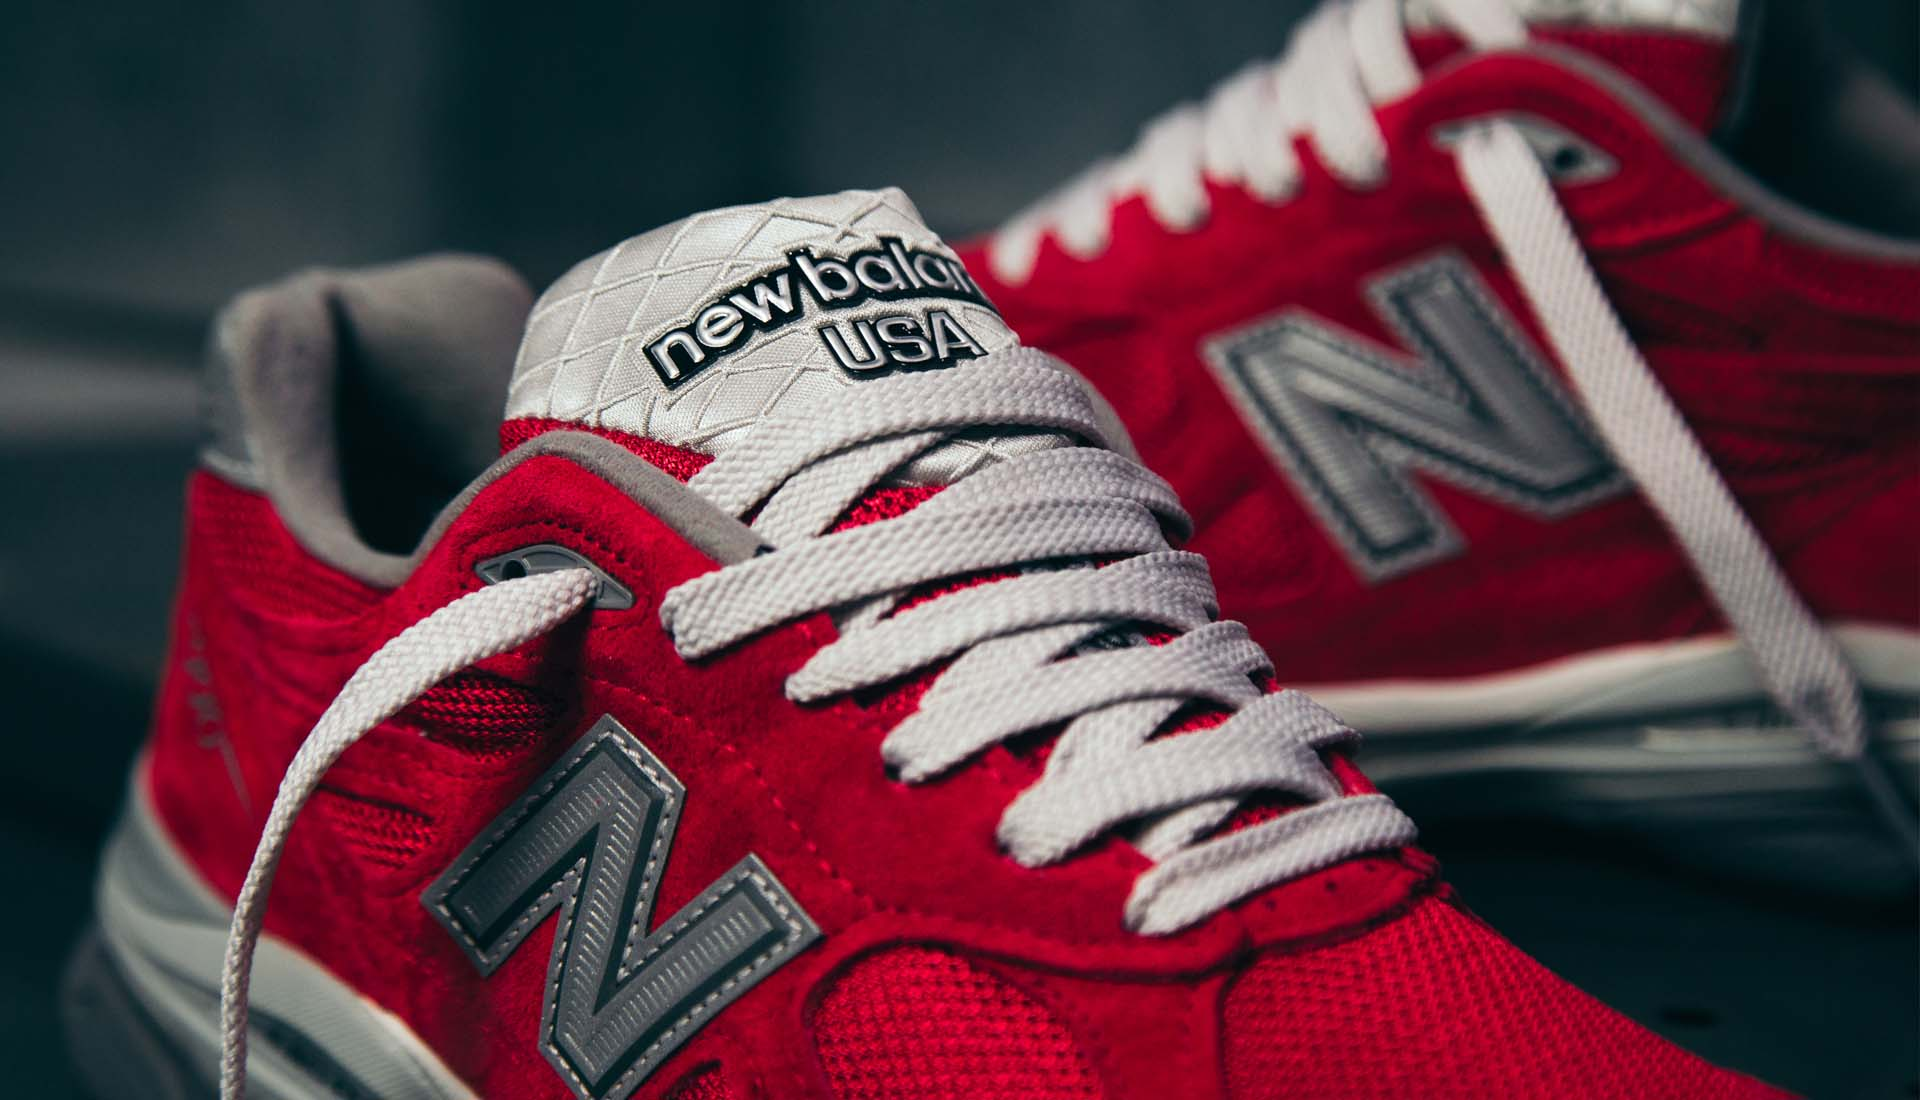 Balance New Soccerbible Nb1 Jurgen Klopp X Launch 990v3 NwOk8n0PX